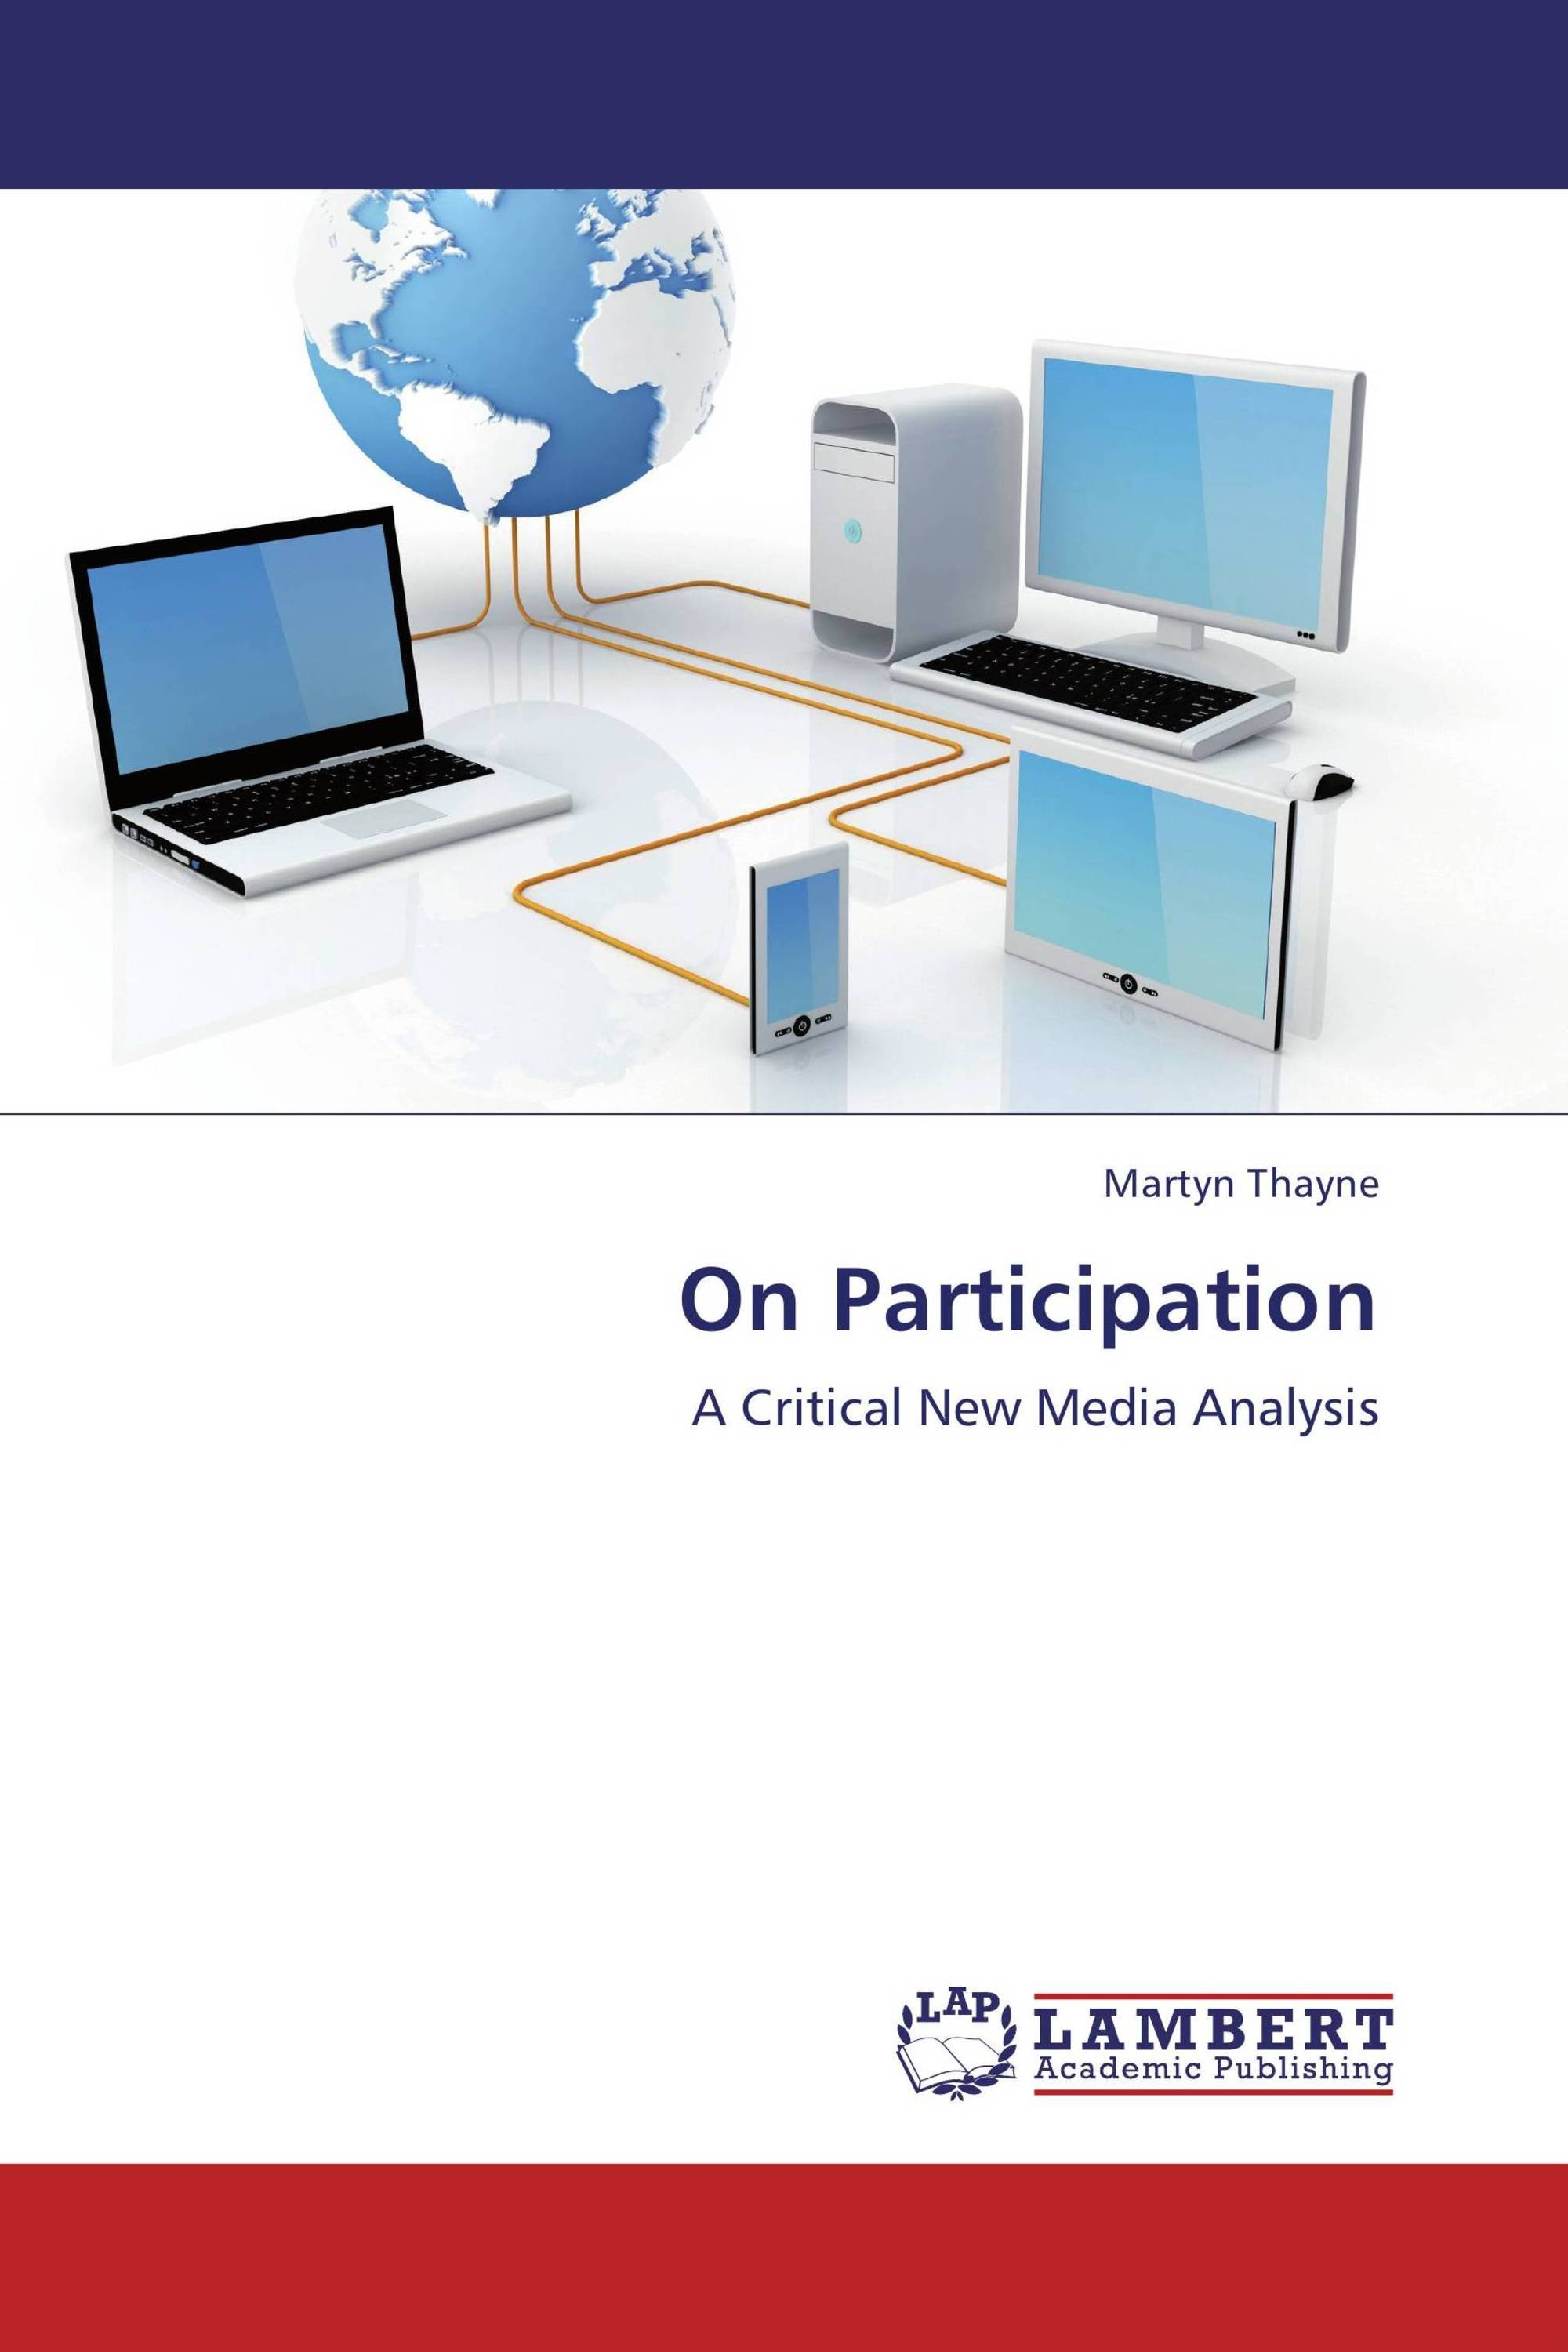 On Participation